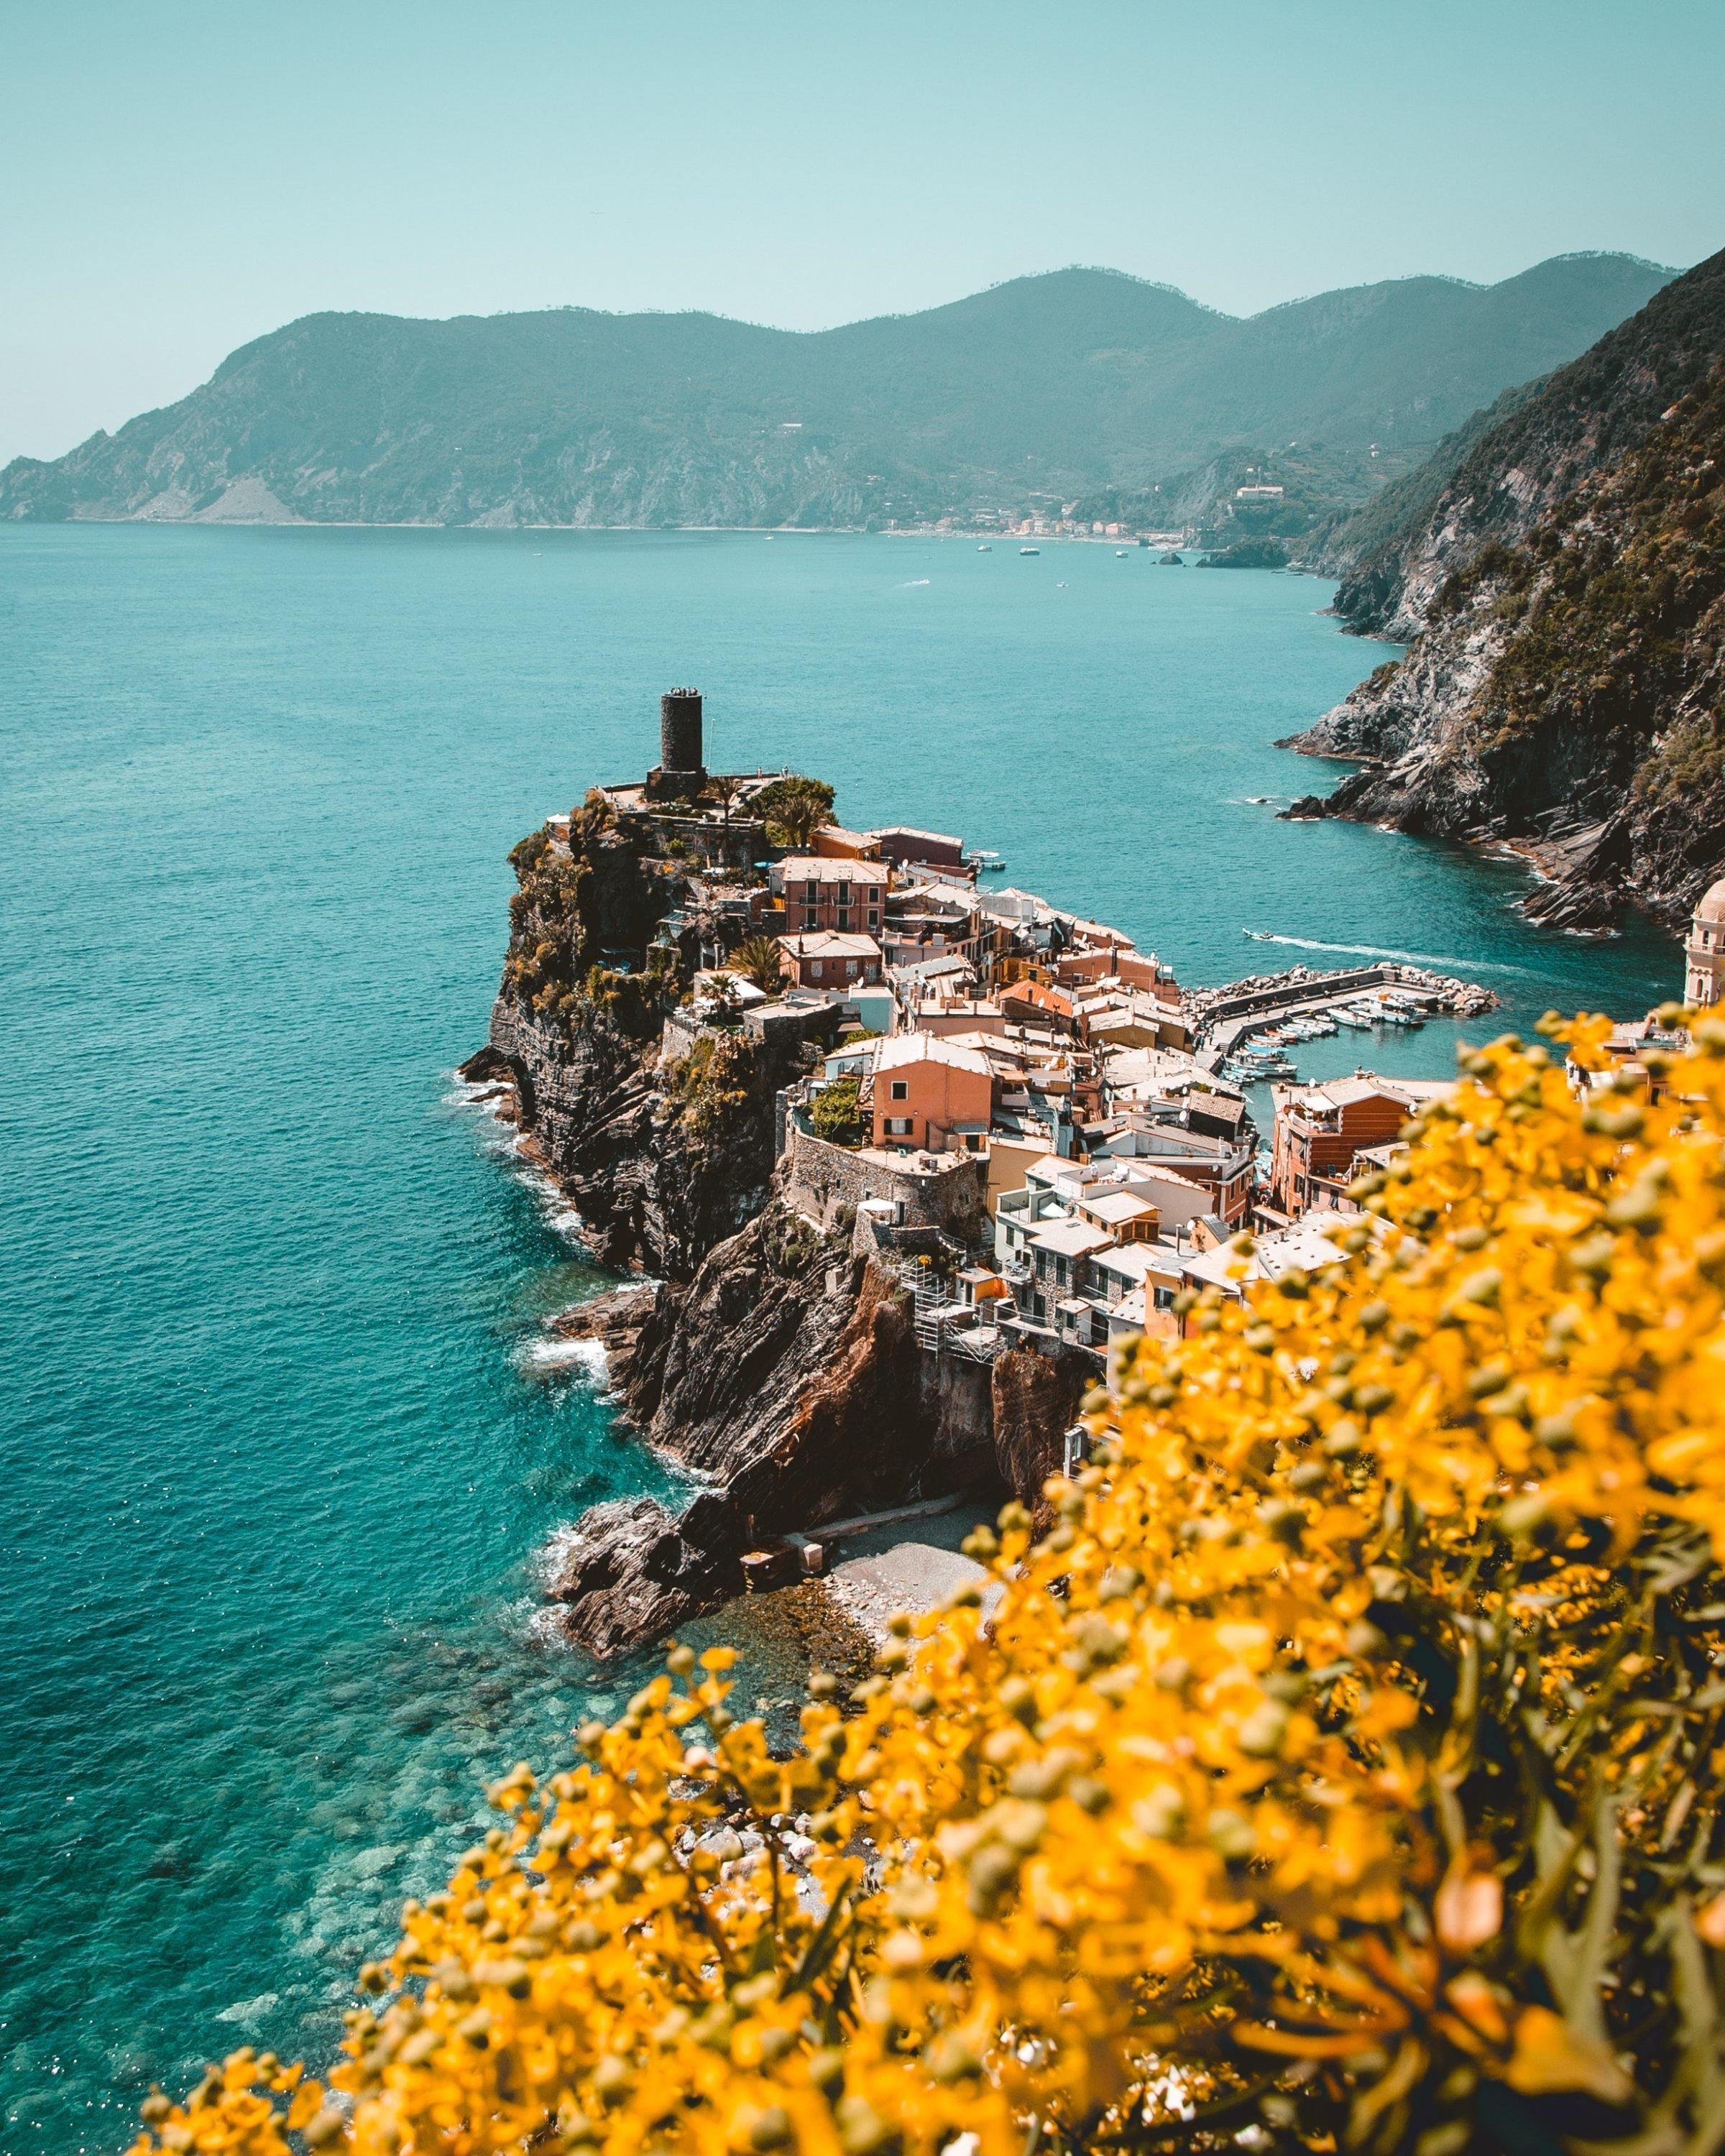 7-Day Piedmont and Cinque Terre - Italy Itinerary